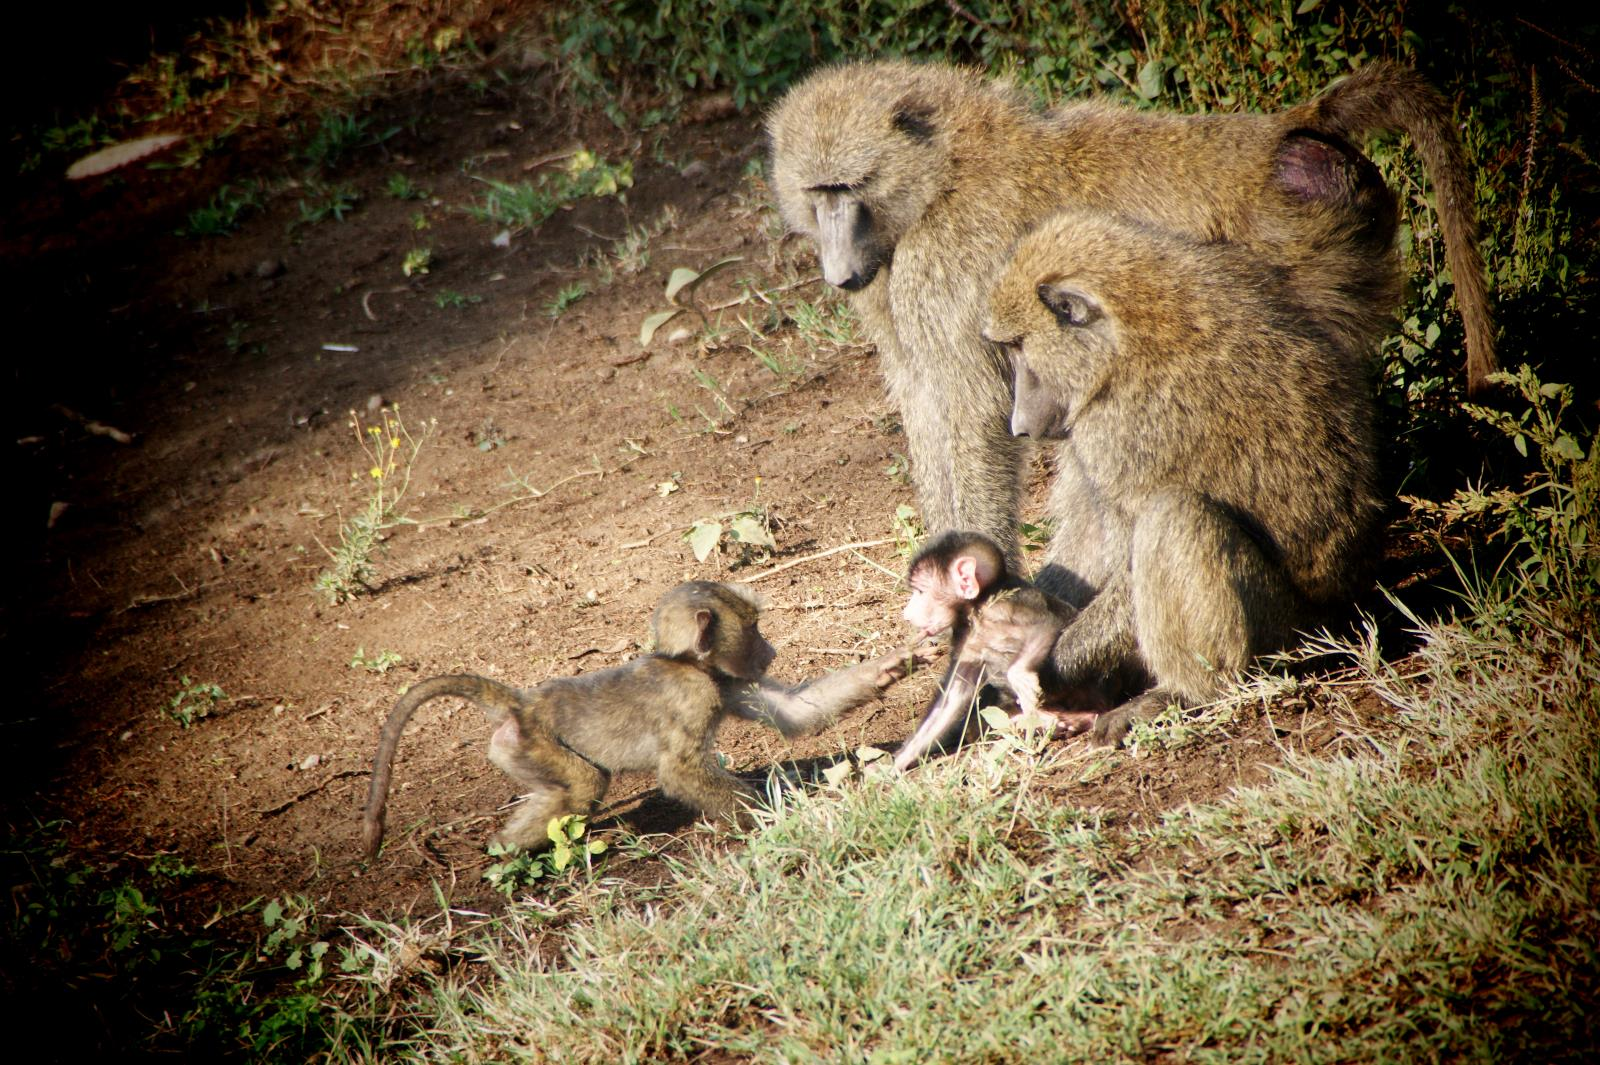 Primate Encounters during Safari in Malawi